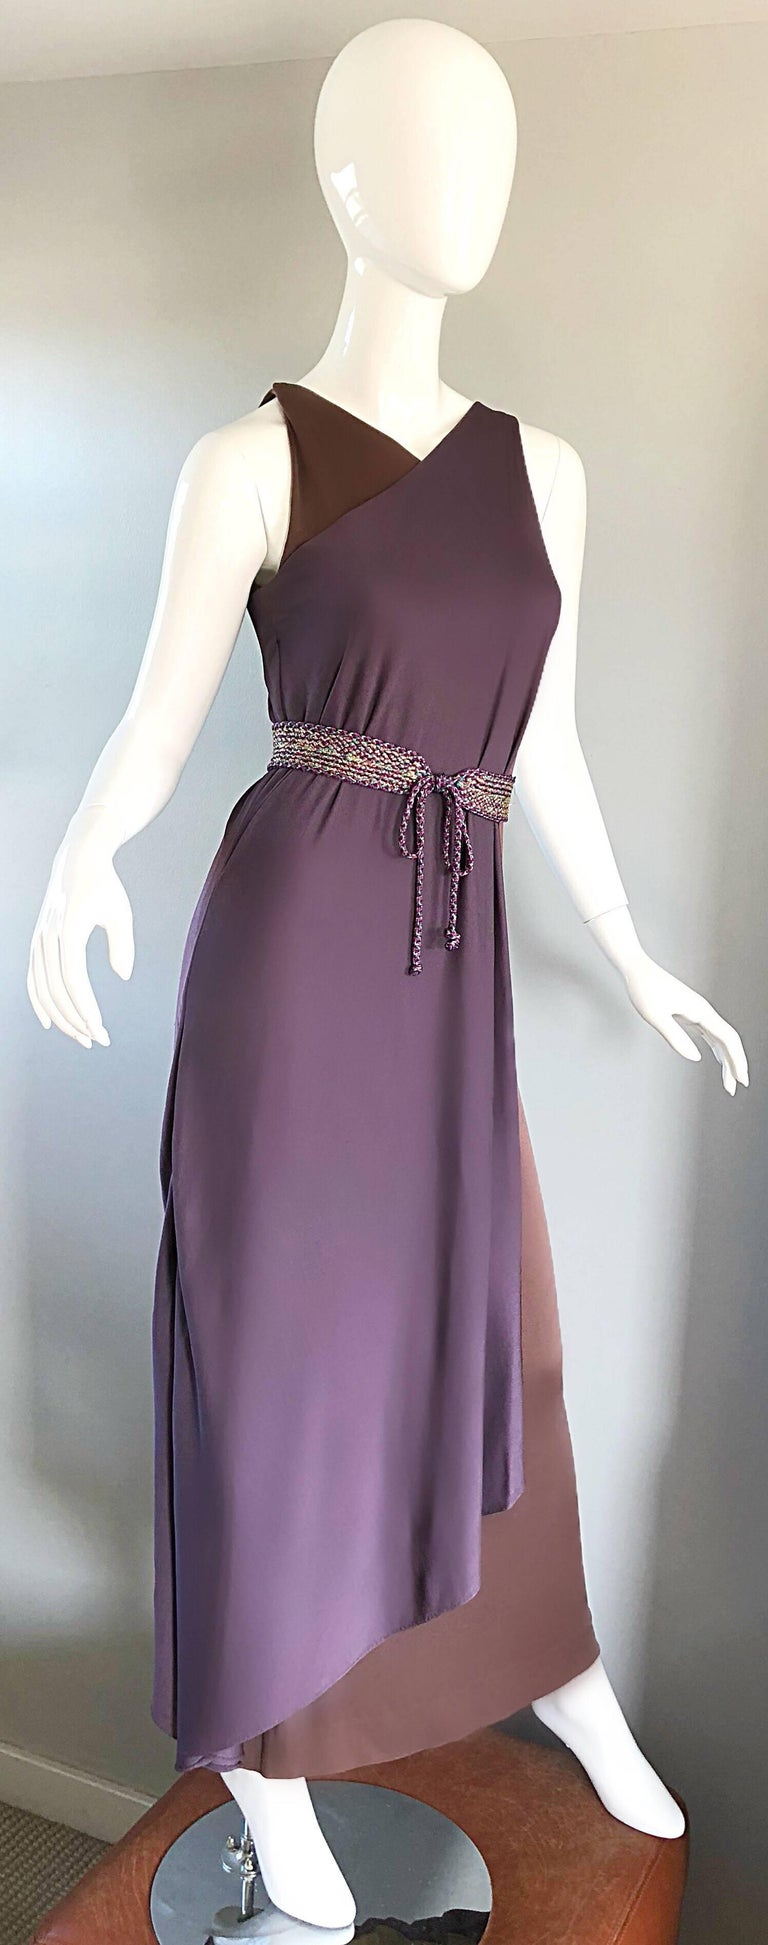 Vintage Bill Blass 1970s Purple + Brown Grecian Inspired Silk Jersey Belted Gown For Sale 2